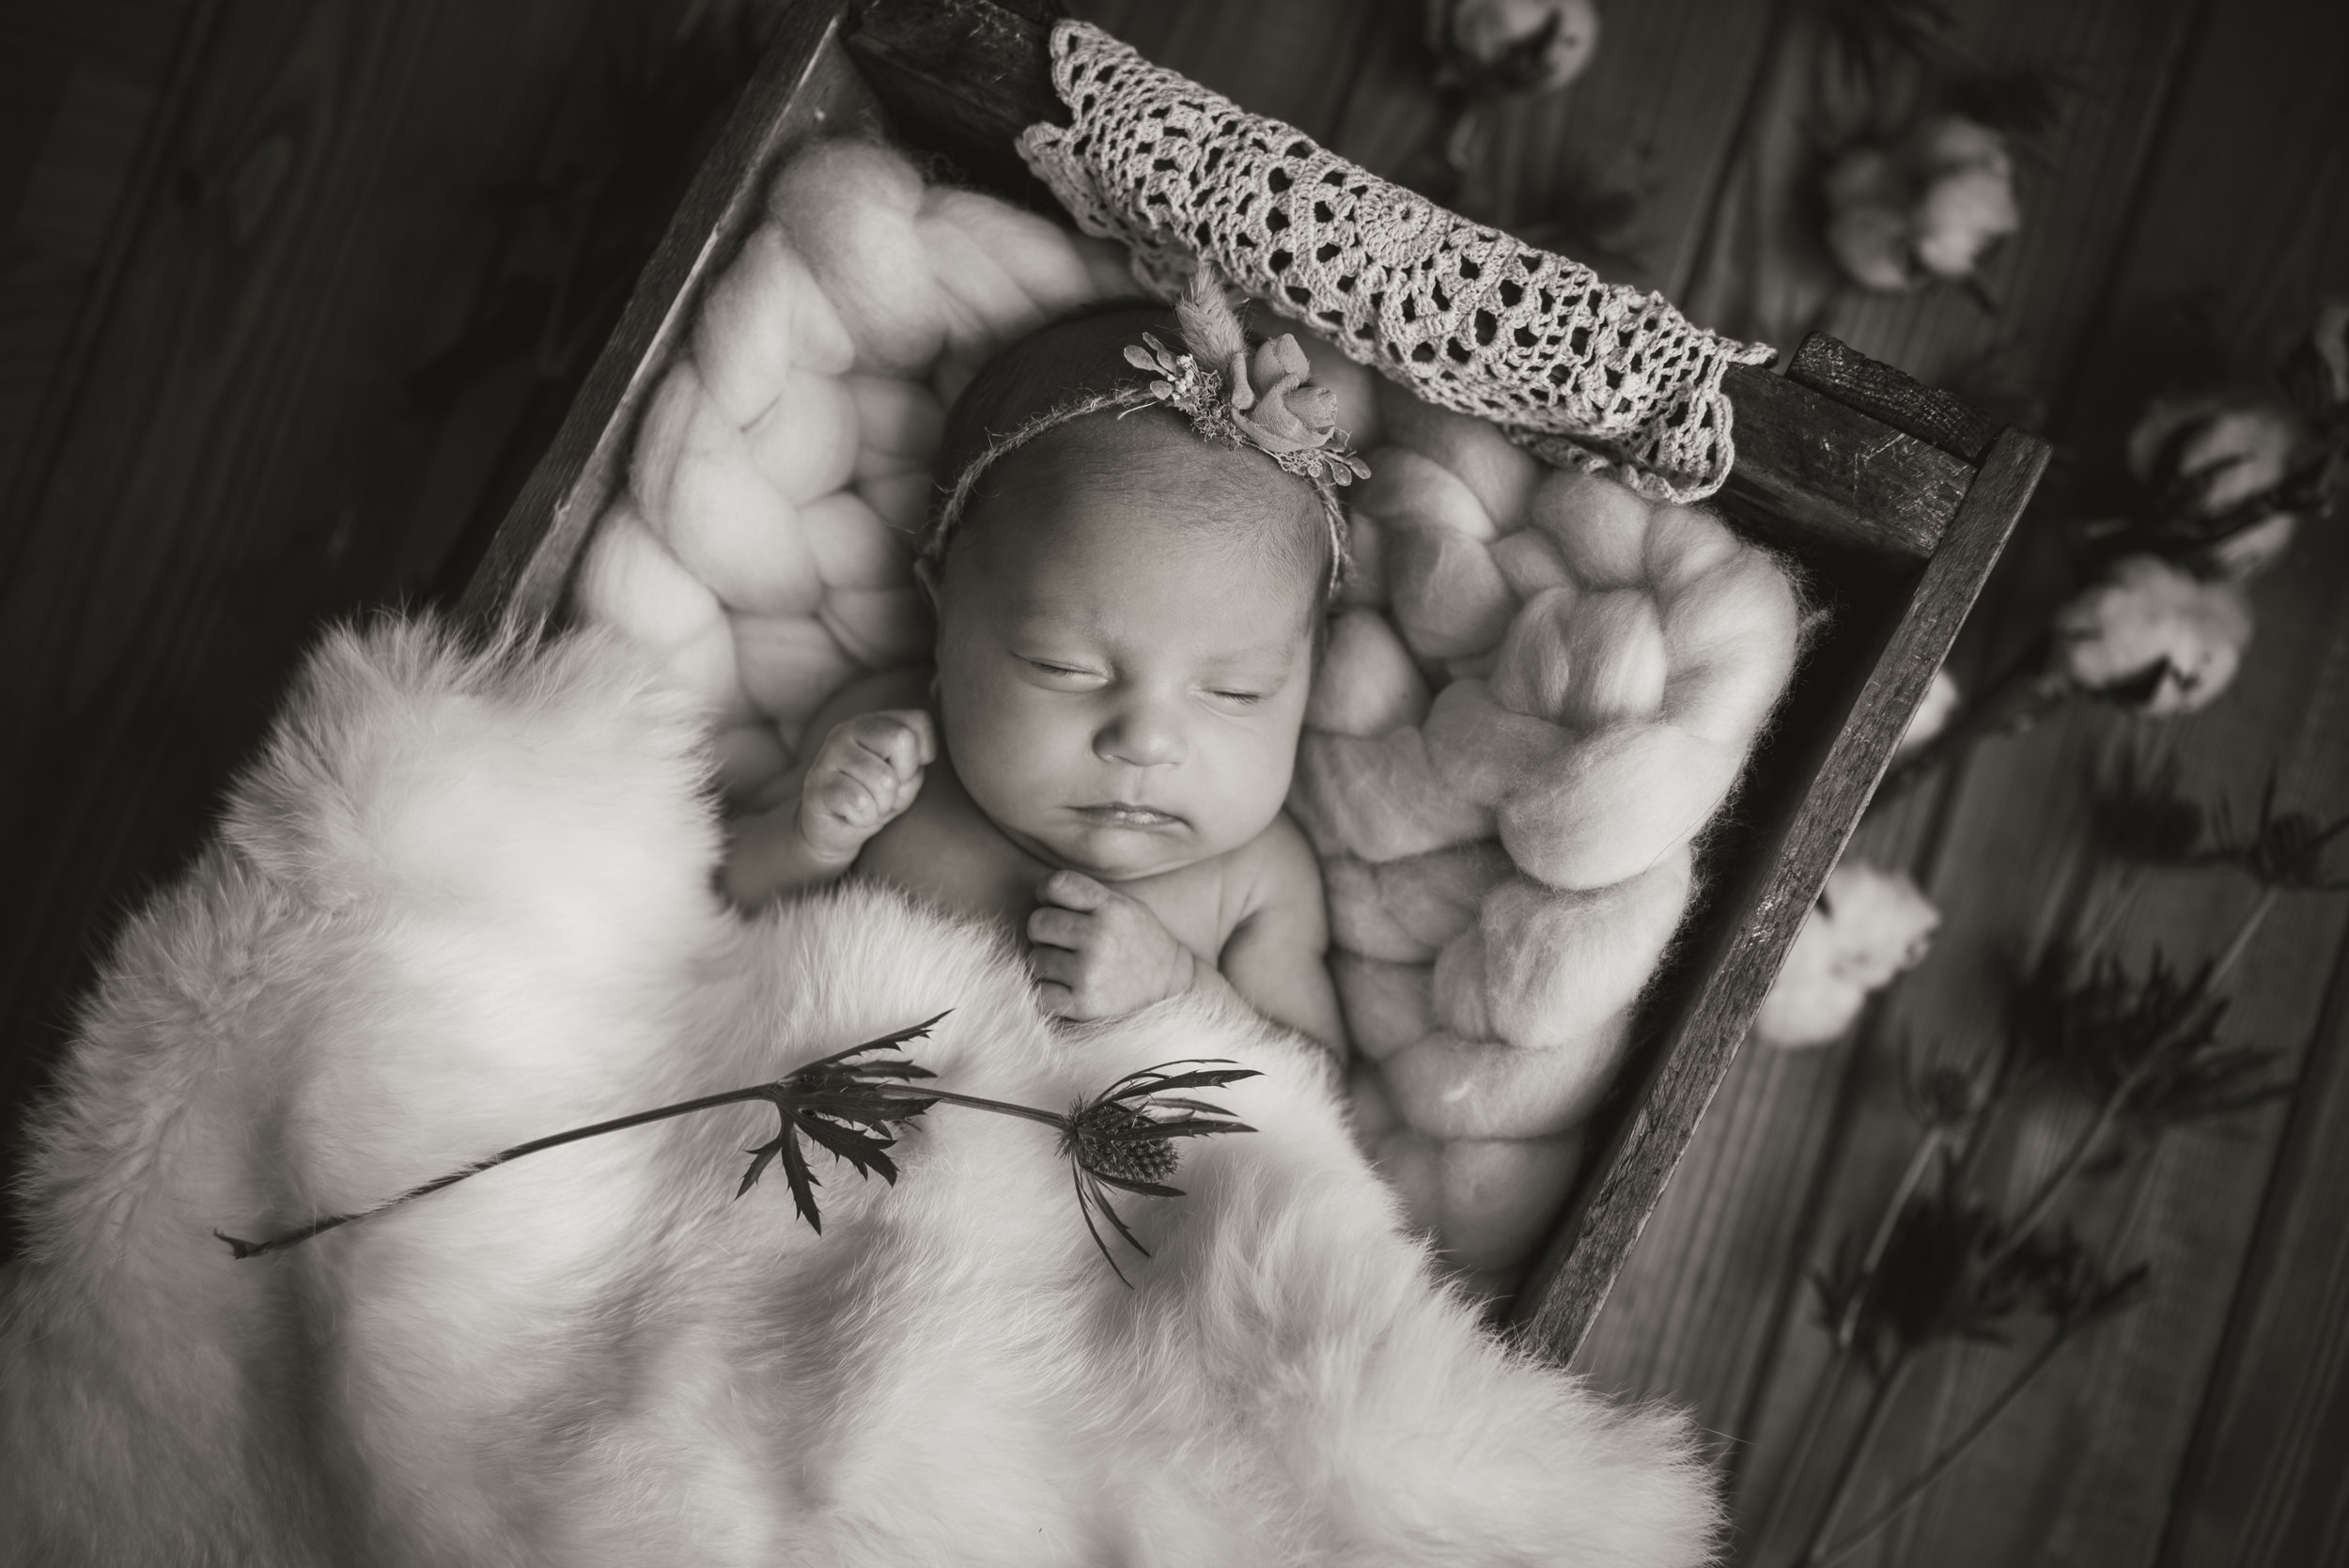 Laura Olson Photography - Nievelina - Newborns - Nova and Luna - December 2016-1490.jpg